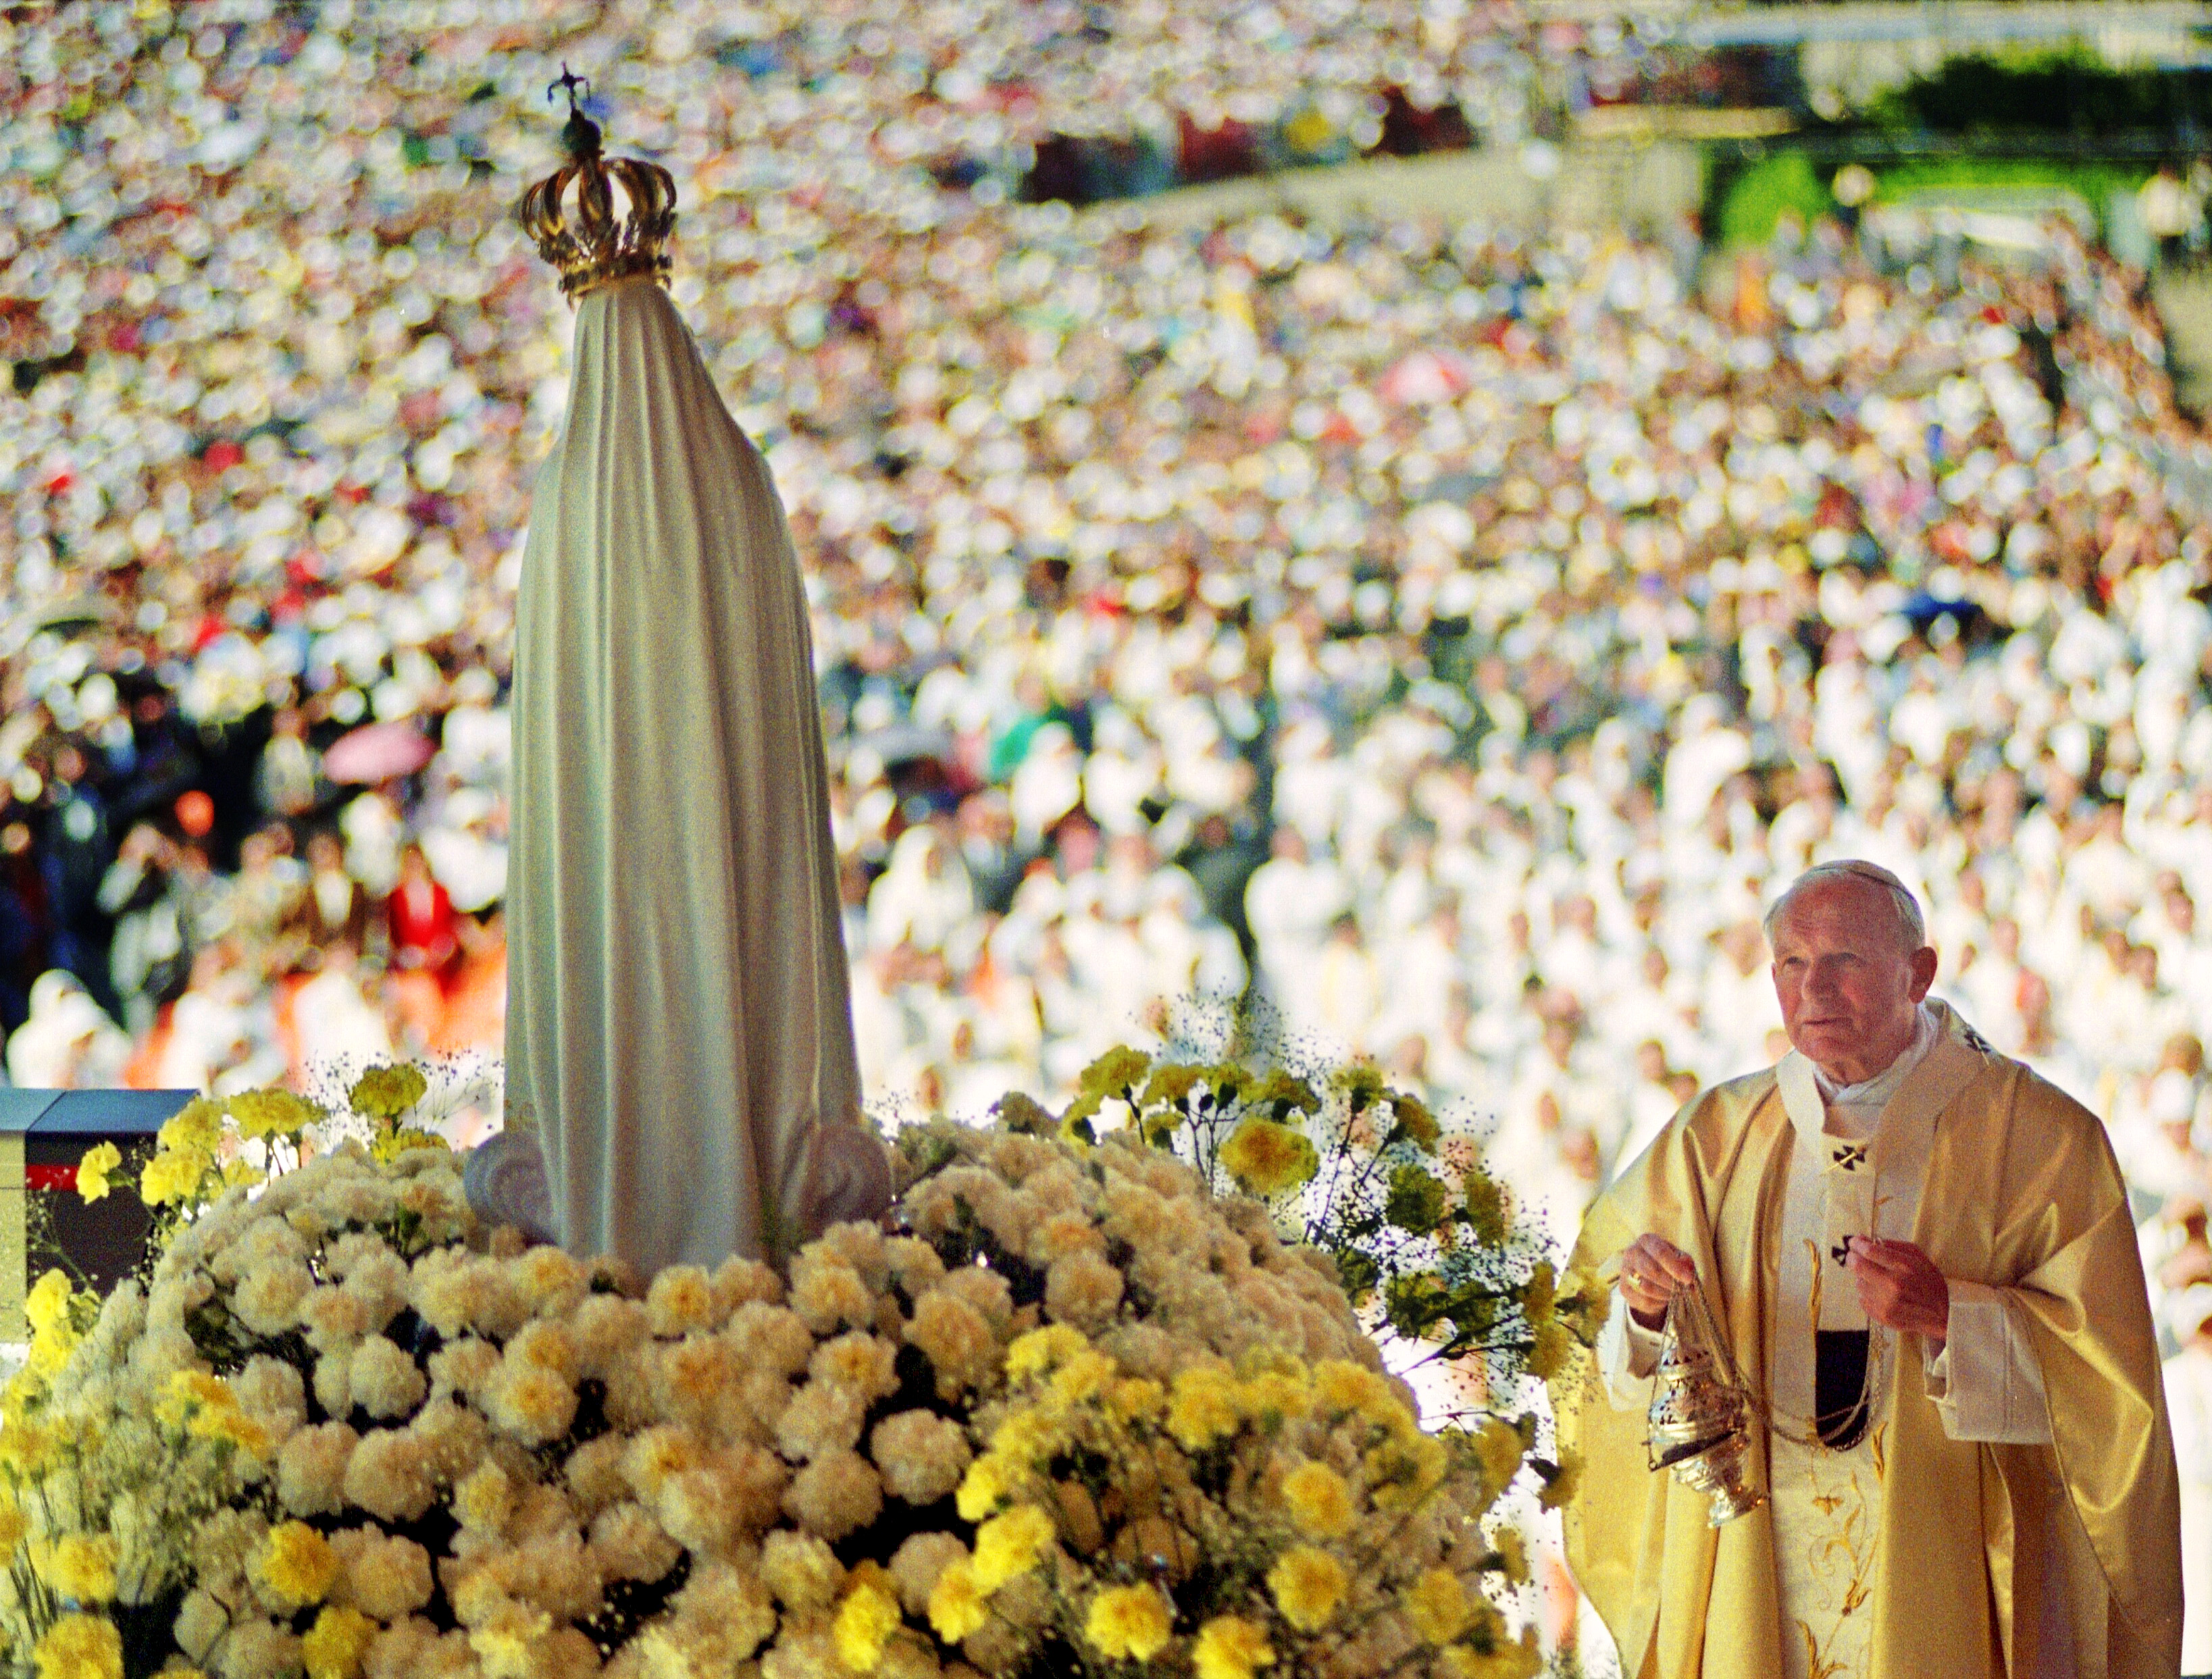 "FATIMA, PORTUGAL: Pope John Paul II celebrates a mass 12 May 1991 in the Chapel of the Apparition in front of the statue of Virgin of Fatima in Fatima where about a million believers attended the Procession of Candles. In 1997, the pope dedicated a shrine in a Polish church to the Virgin of Fatima, thanking her for intervening to save him from an assassination attempt in 1981. The Pontiff said that surviving the assassination attempt against him 13 May 1981 by Turkish terrorist Ali Agca was a miracle thanks to the ""intervention of the Virgin of Fatima"", who ""deflected the bullet"" fired at point-blank range. The Catholic church also believes the Virgin of Fatima intervened to bring an end to the Soviet regime after asking the three shepherd children to pray for the ""conversion"" of Russia. The Pontiff visited Portugal from 10 to 13 May 1991. It was his 50th International Pastoral visit. AFP PHOTO DERRICK CEYRAC . (Photo credit should read DERRICK CEYRAC/AFP via Getty Images)"